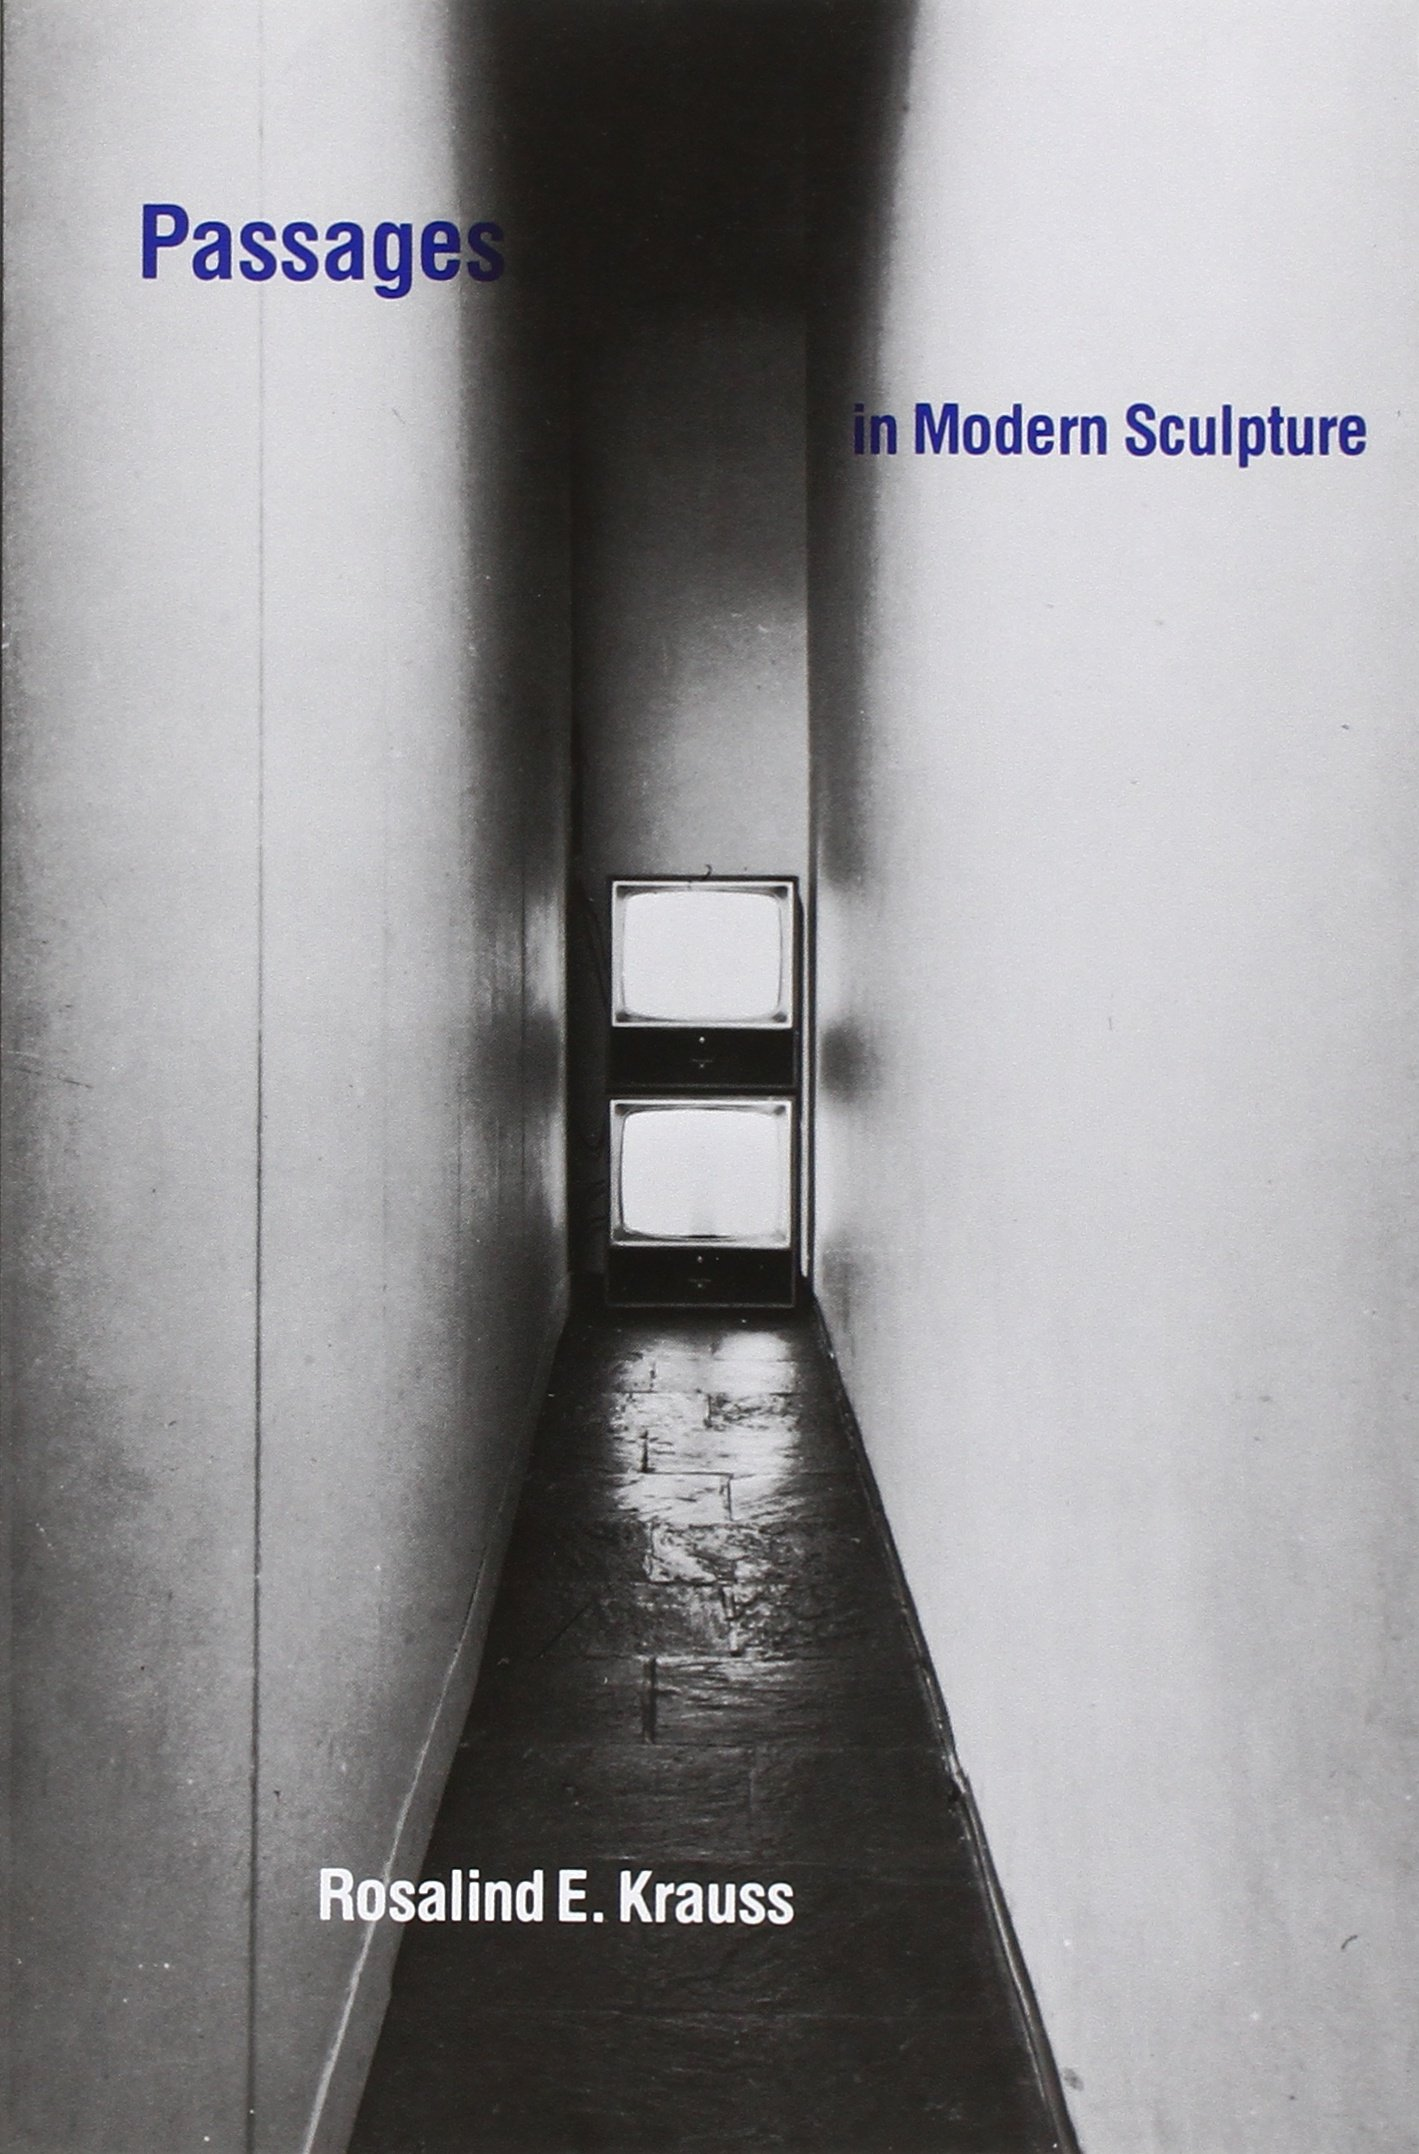 Passages in modern sculpture: amazon.de: rosalind e krauss ...